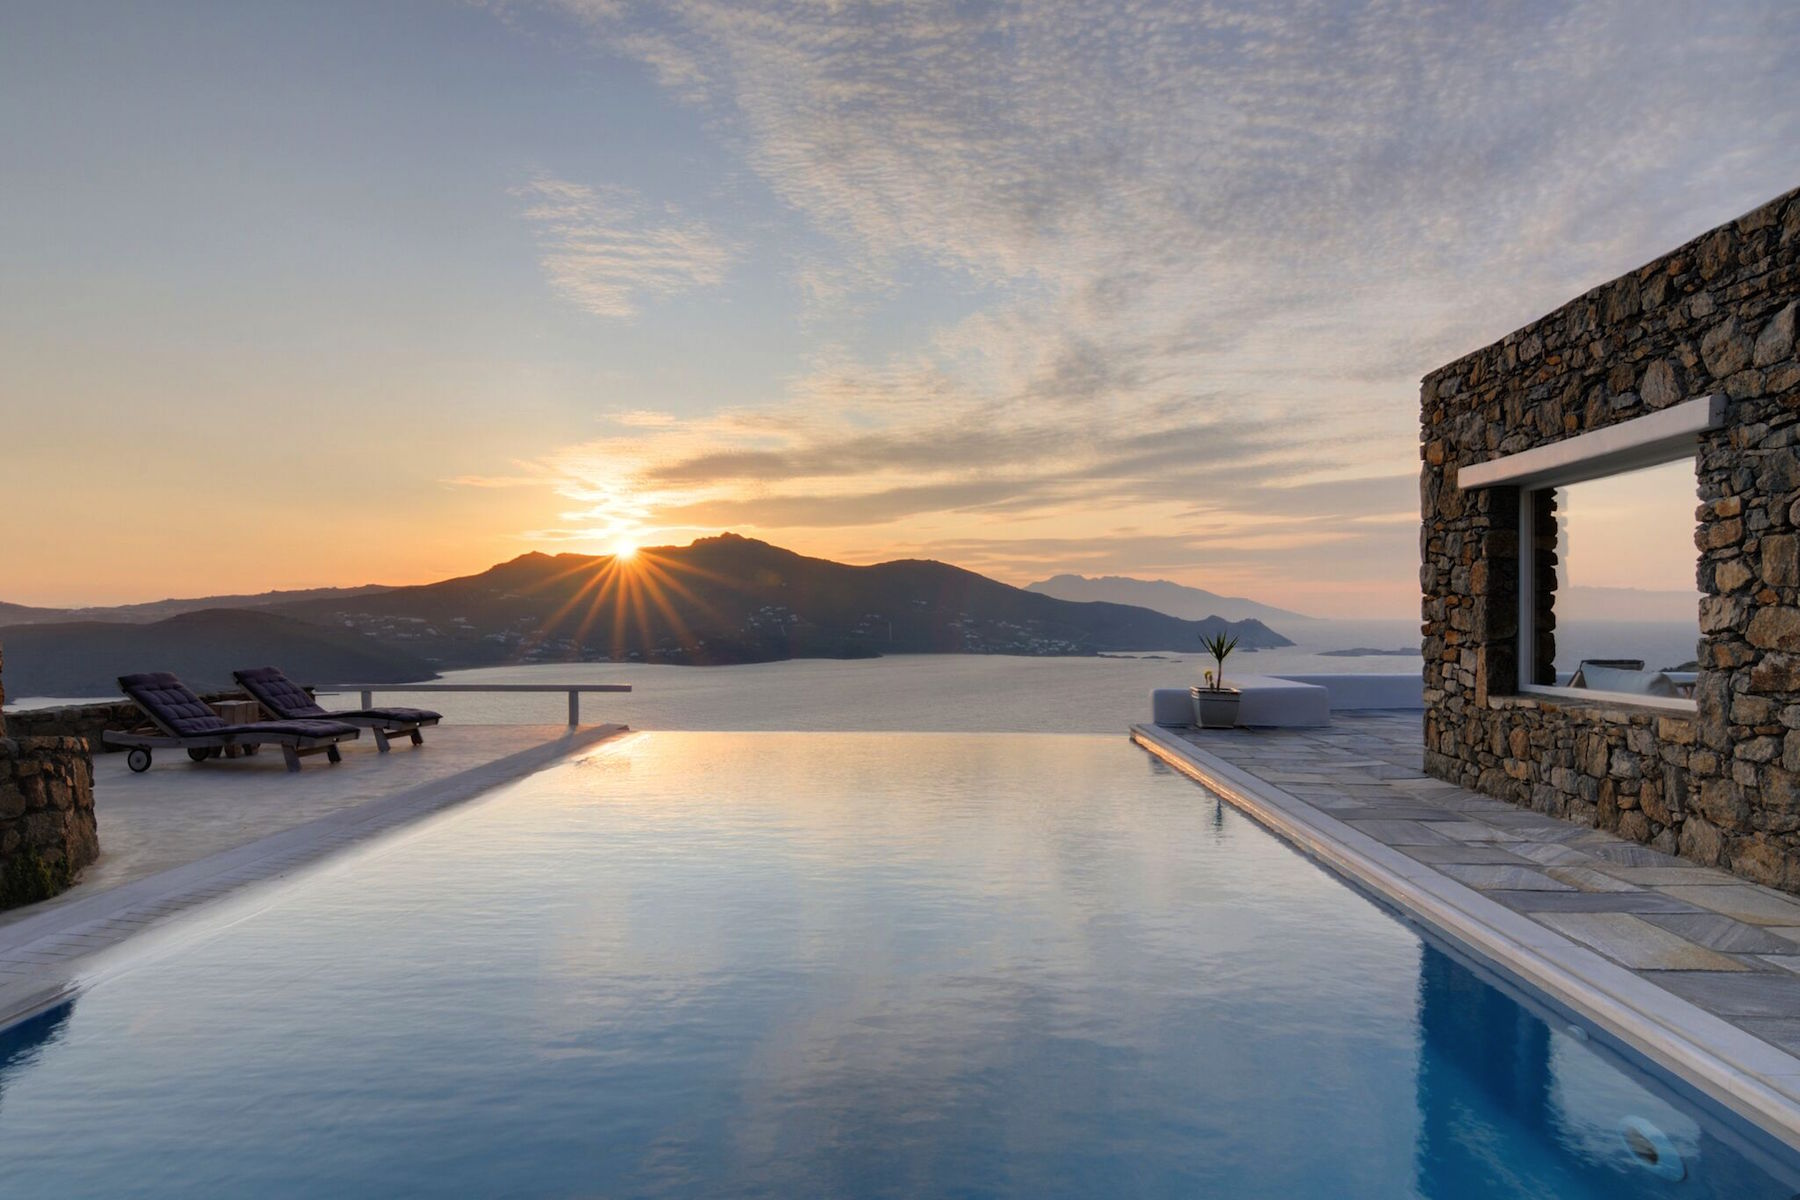 Single Family Home for Sale at Oceda Ftelia Oceda Mykonos, Southern Aegean, 84600 Greece